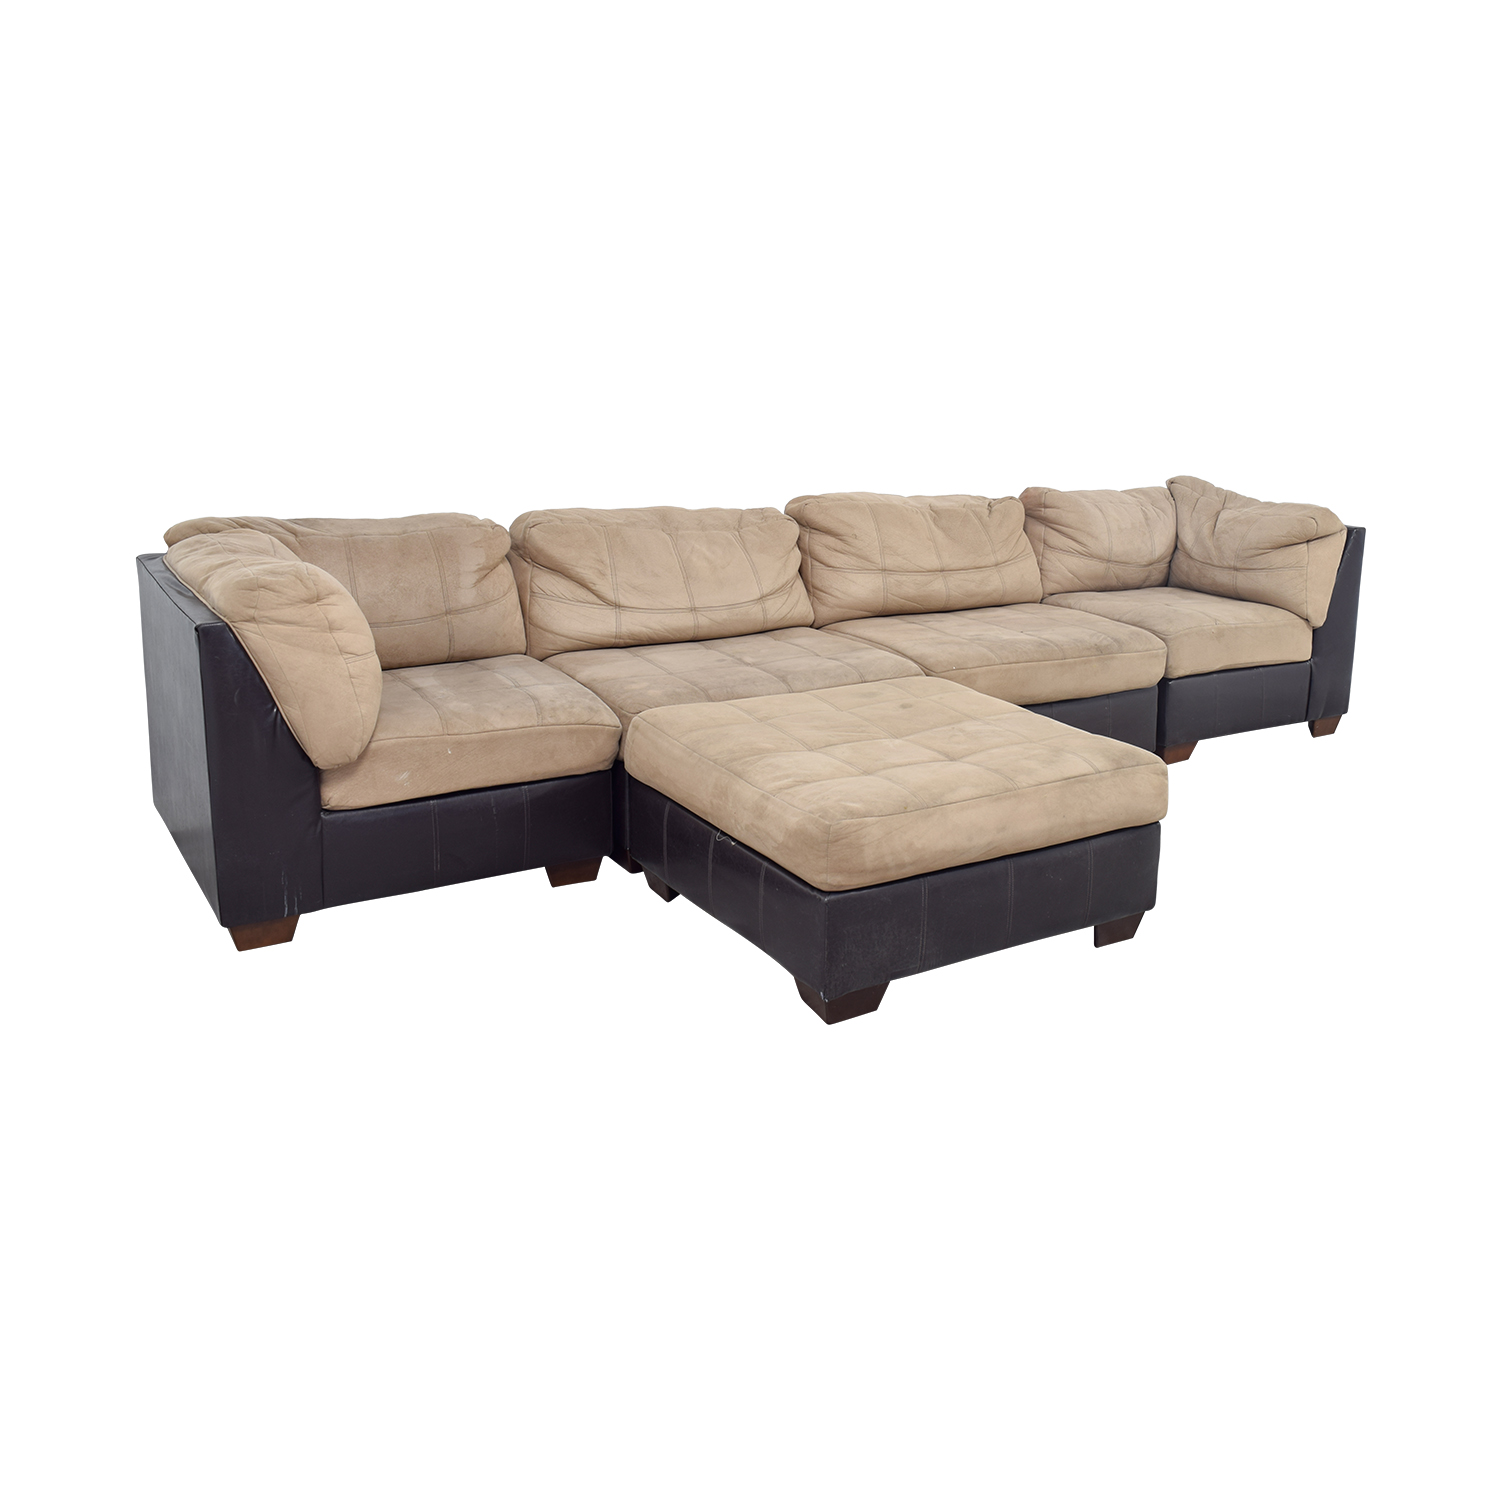 Ashley Furniture Ashley Furniture Brown Leather and Beige Sectional coupon